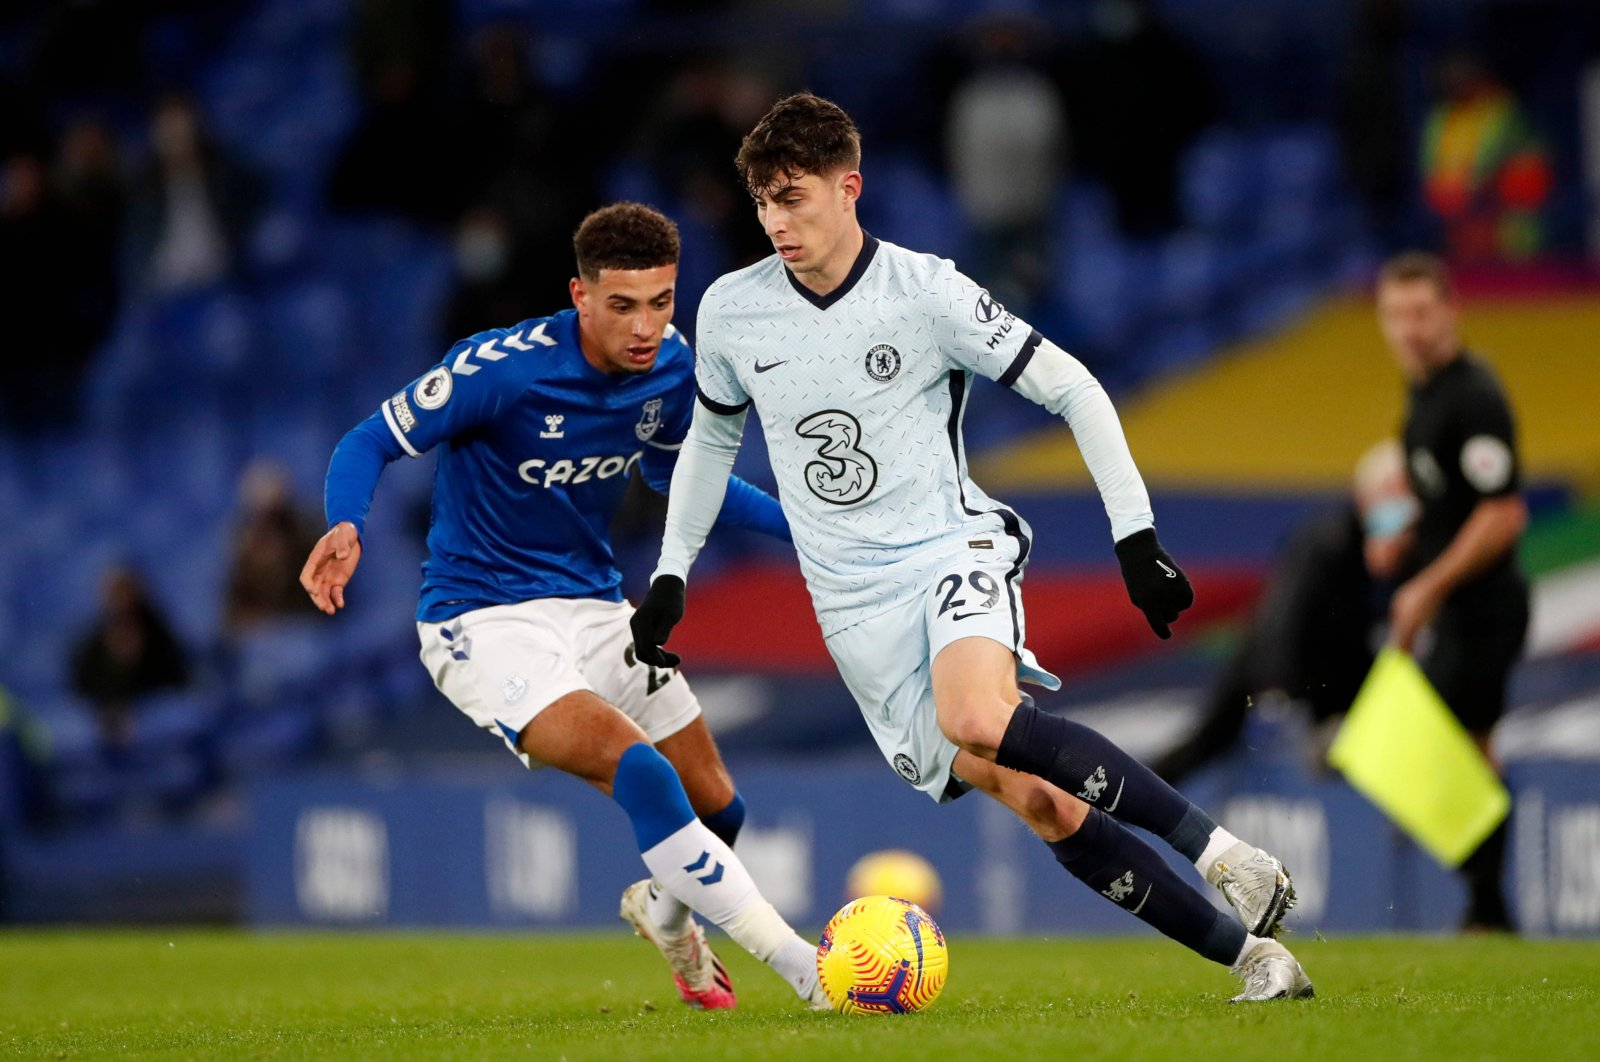 Chelsea's Kai Havertz (R) runs with the ball during a game against Everton, in Liverpool, England, Dec. 12, 2020. (AFP PHOTO)